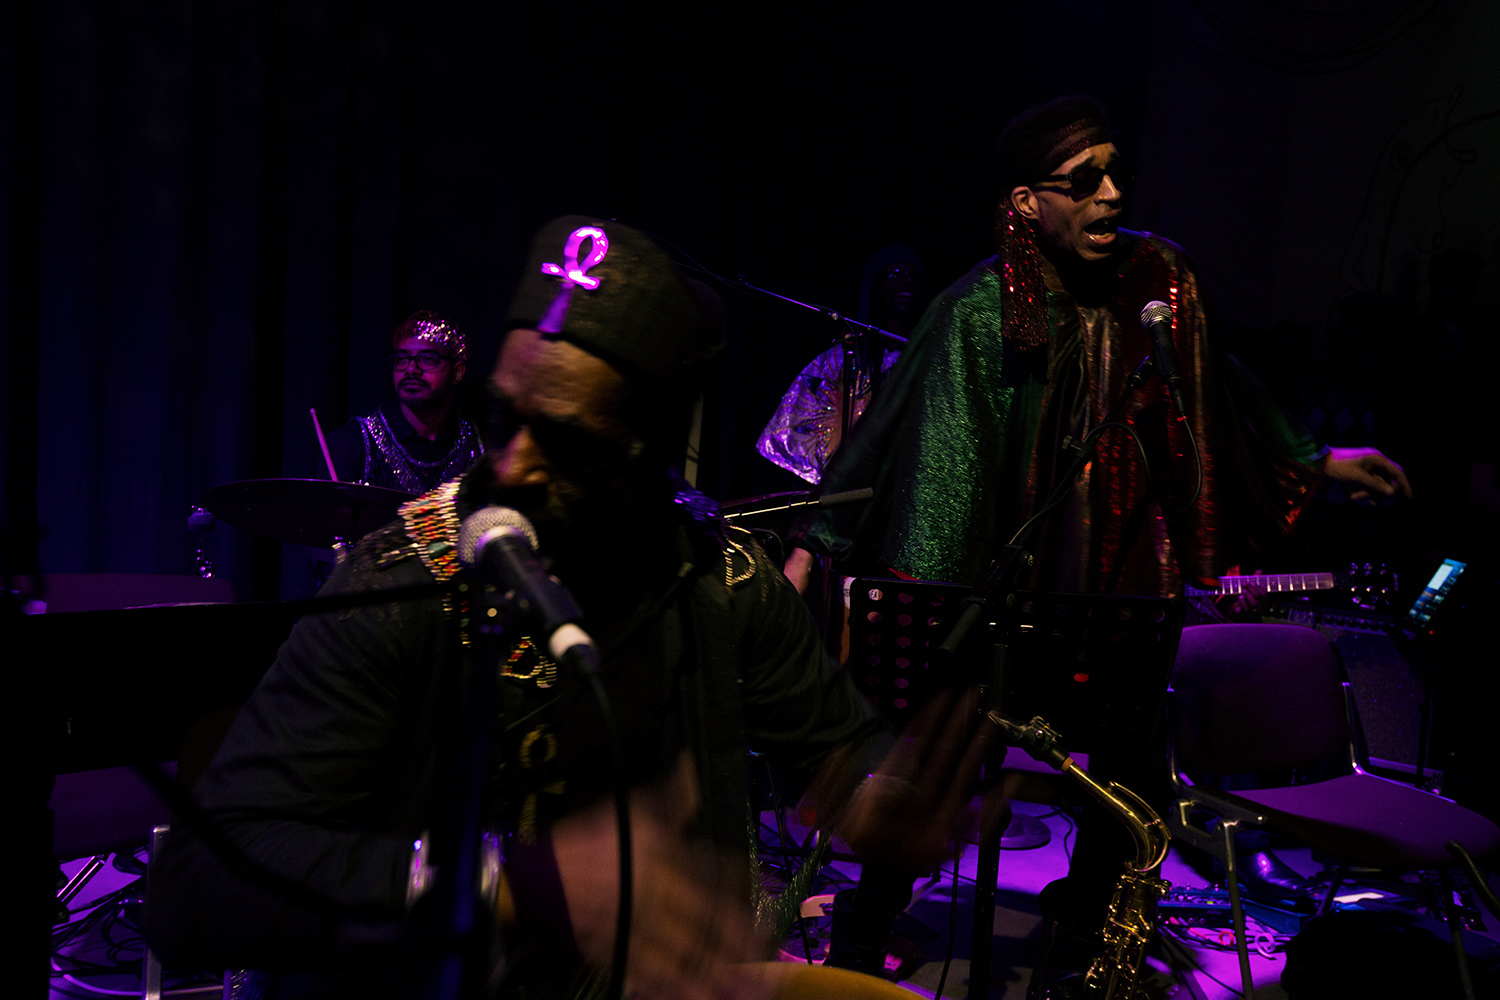 Sun Ra Arkestra directed by Marshall Allen by Laurent Orseau - Concert - Les Ateliers Claus - Brussels, Belgium #8